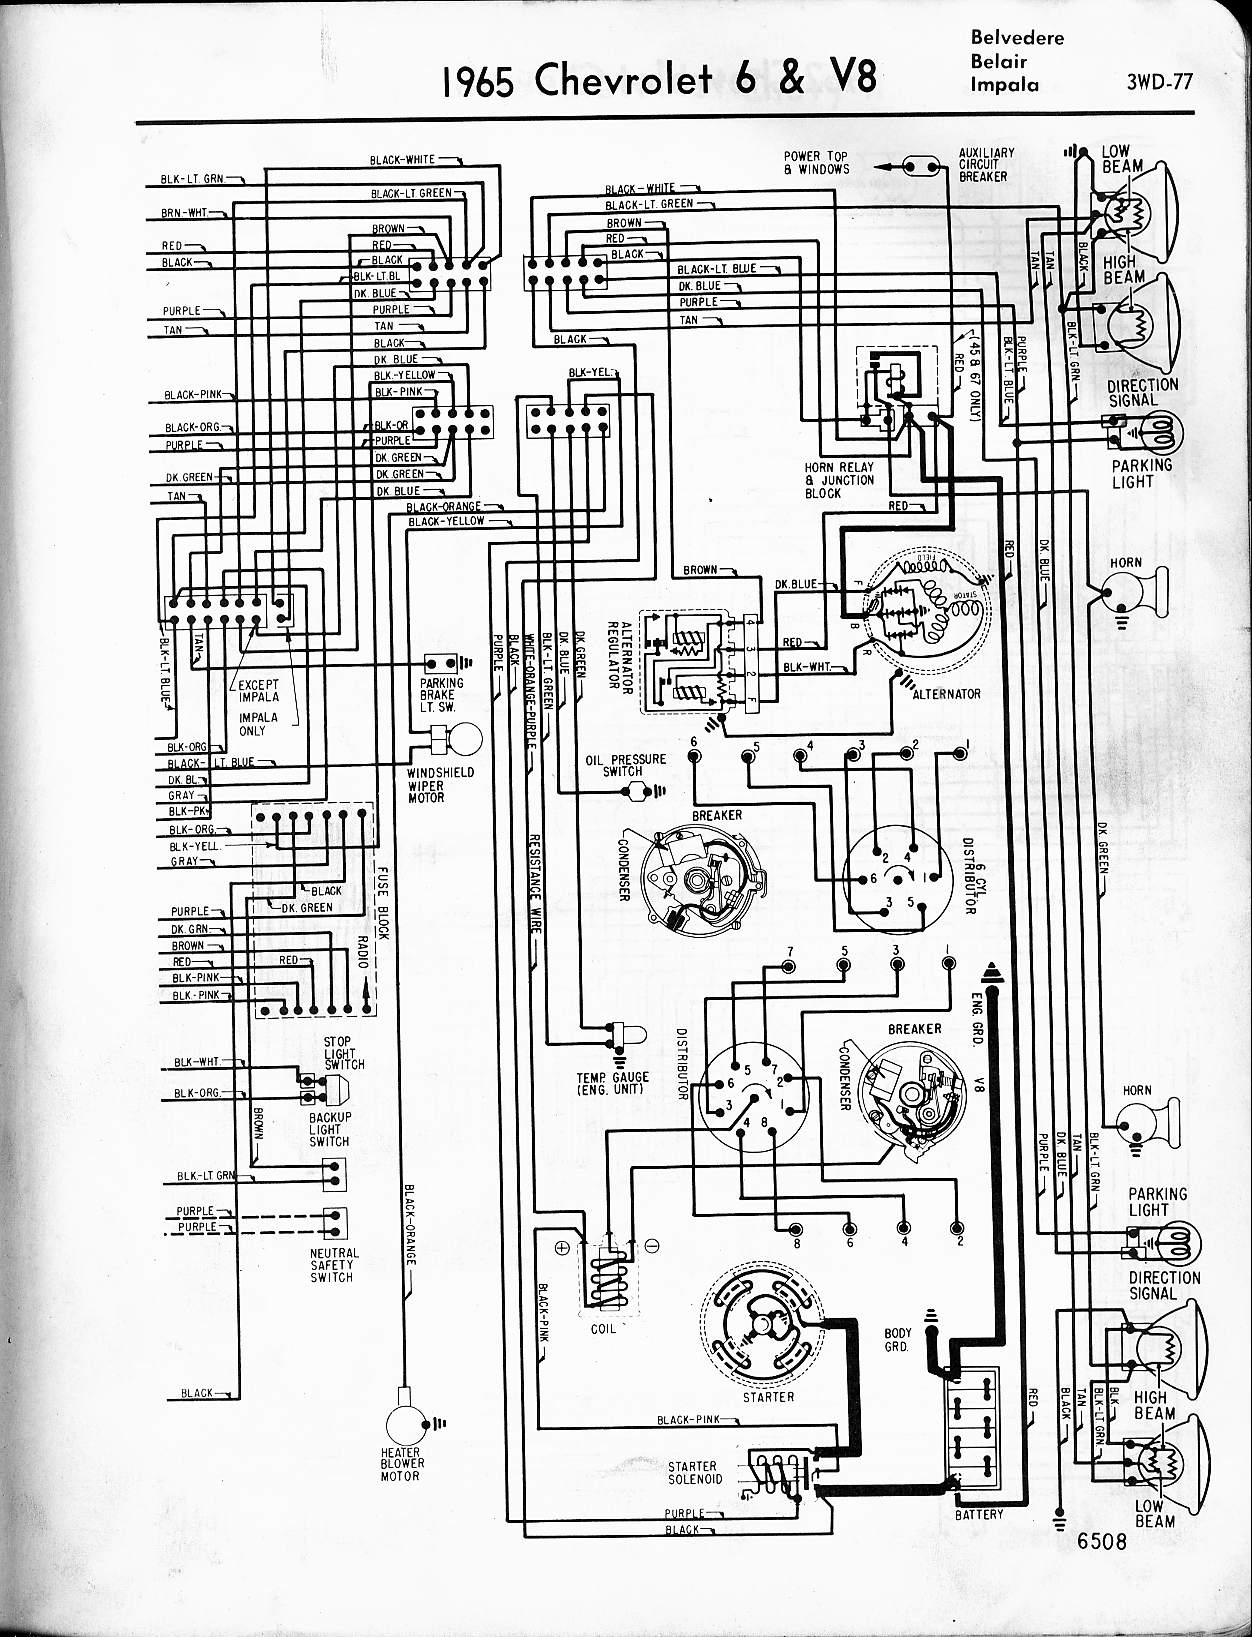 MWireChev65_3WD 077 chevy diagrams 1970 corvette wiring diagram at mifinder.co